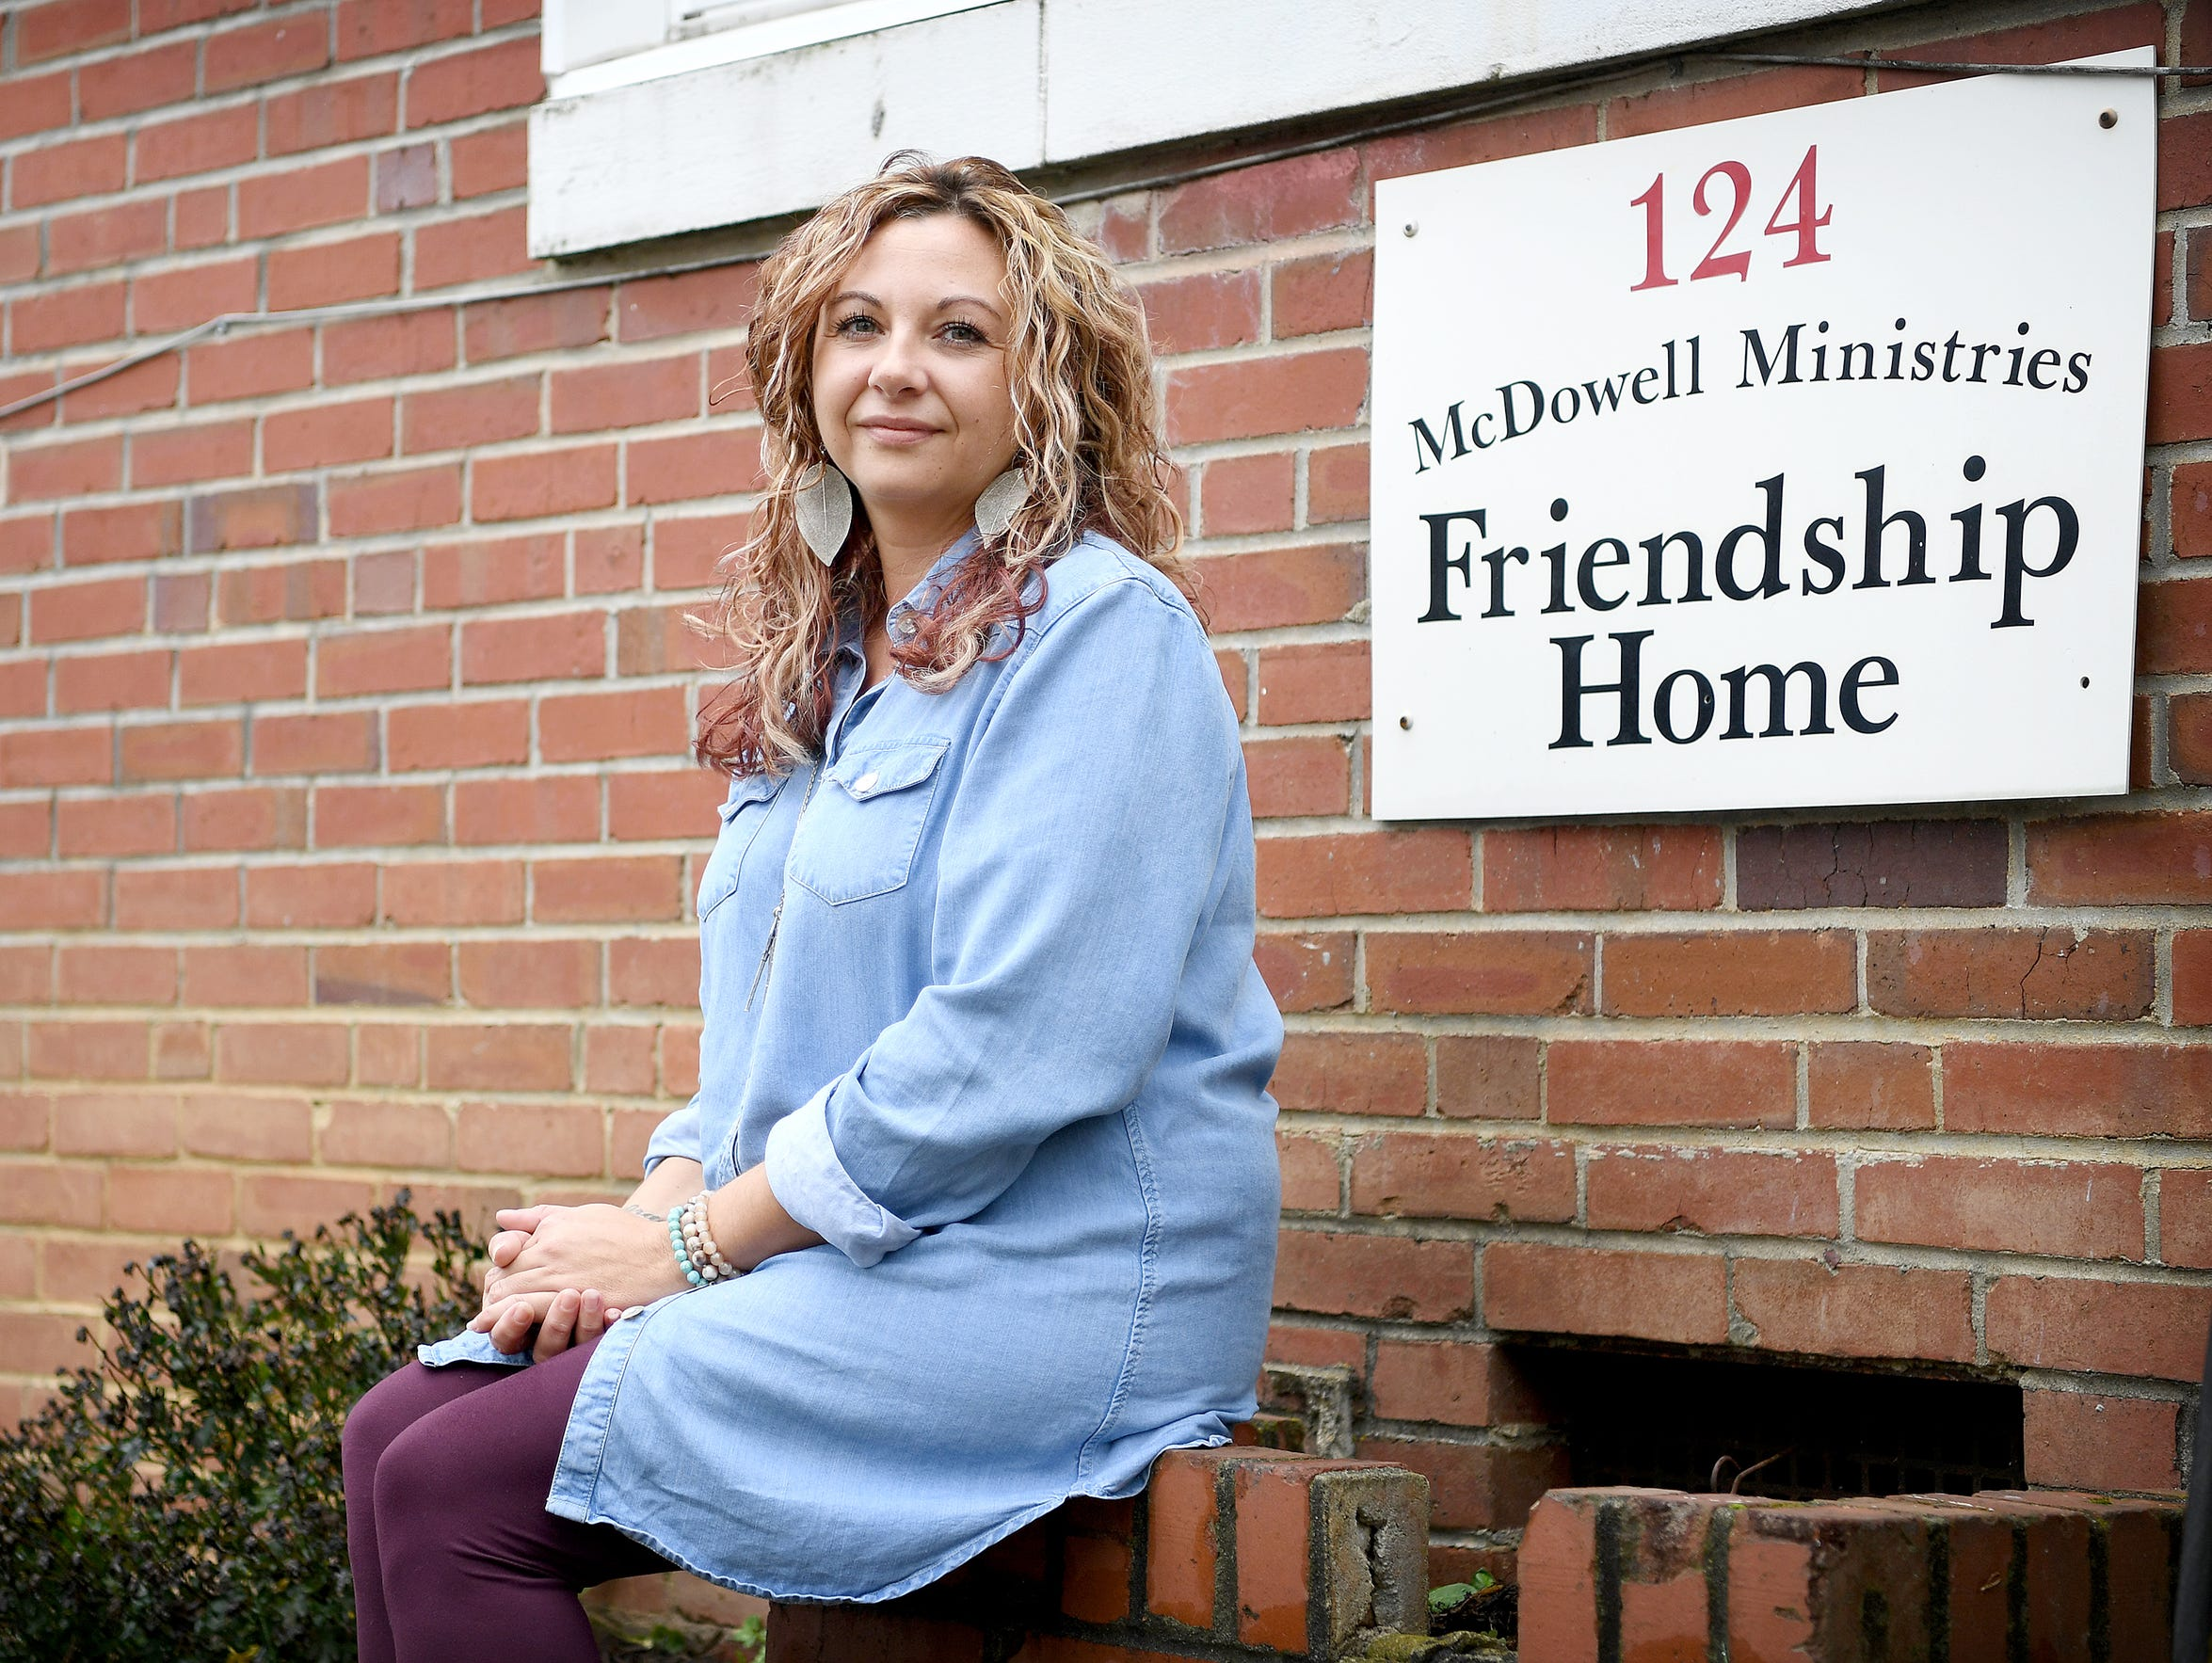 Crystal Sweatt is the manager of the McDowell Mission